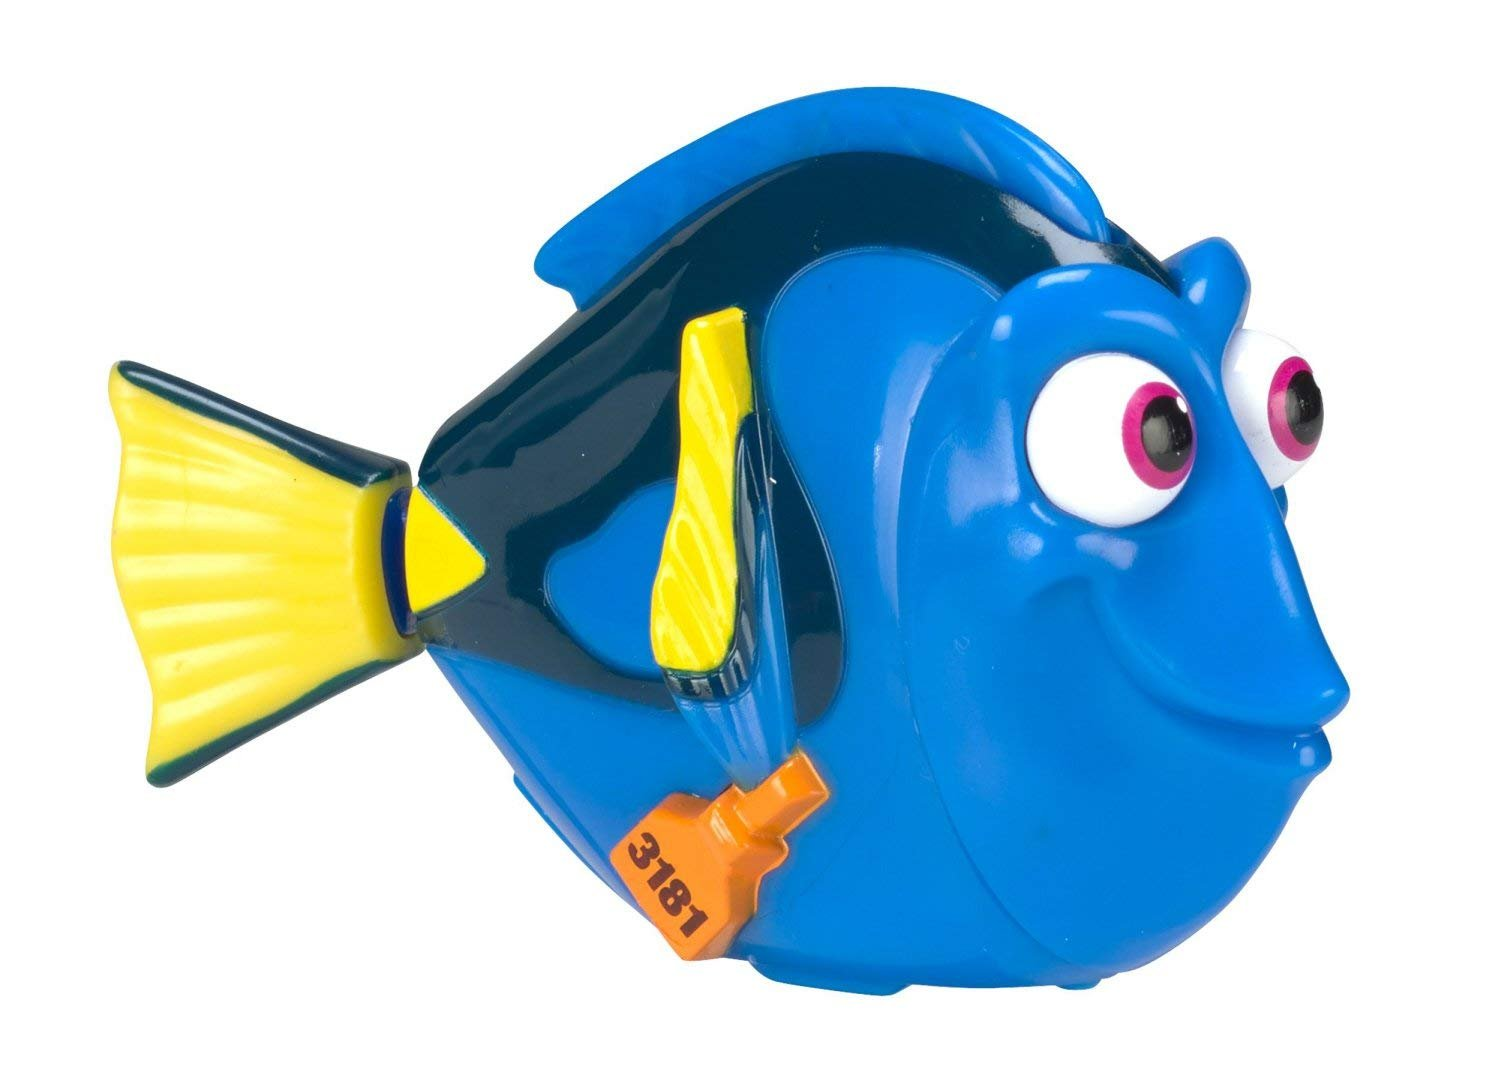 Finding Dory Swigglefish Dory Action Figure with Tag